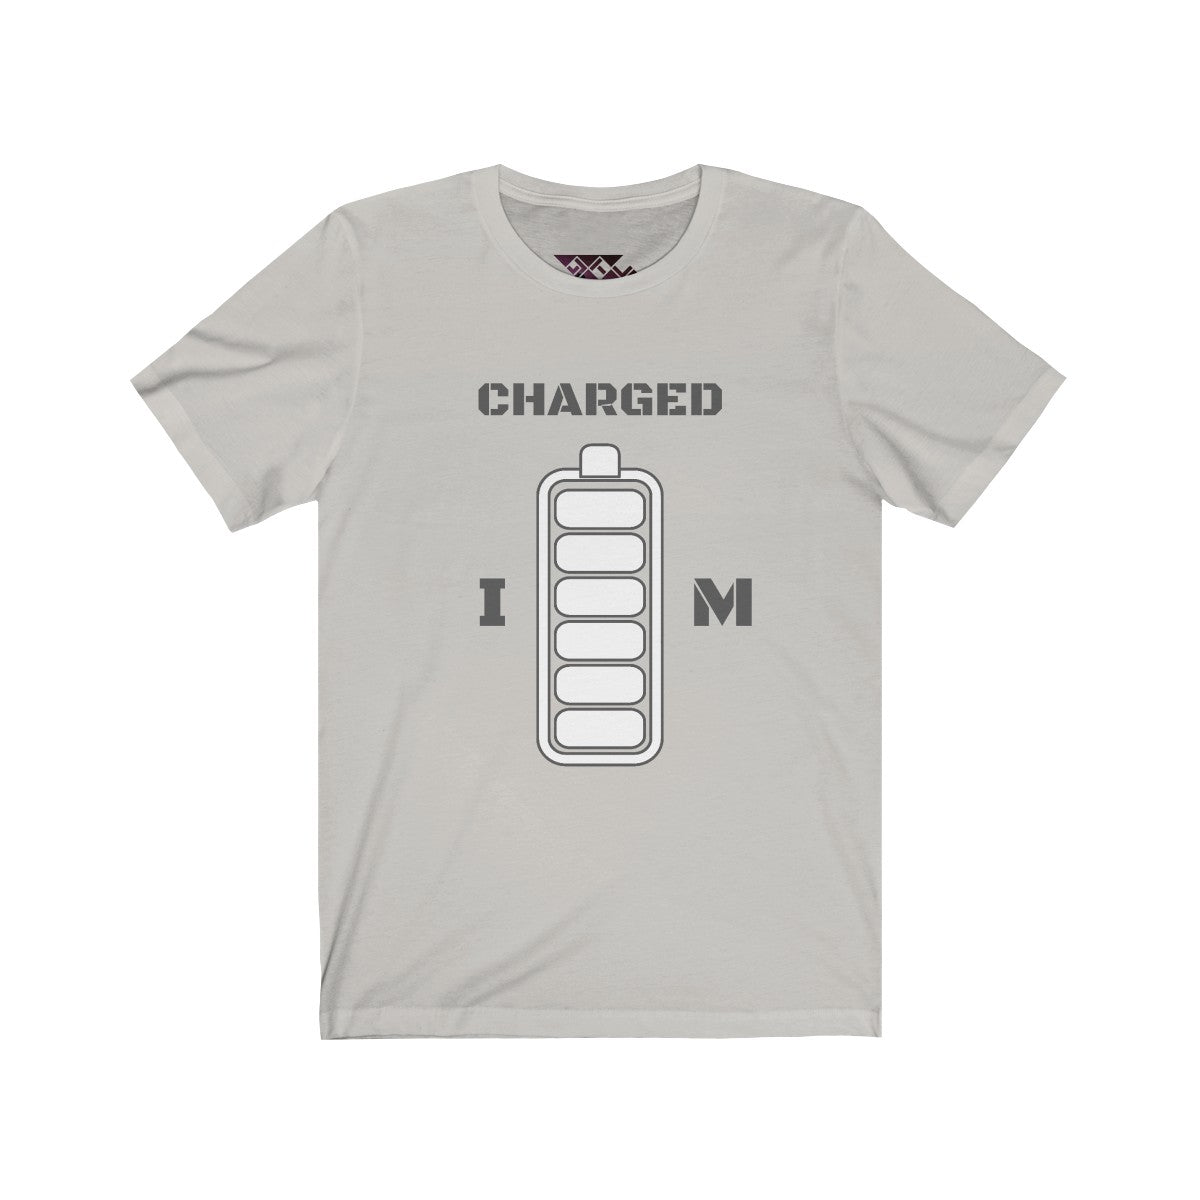 I M CHARGED Unisex Jersey Short Sleeve Tee